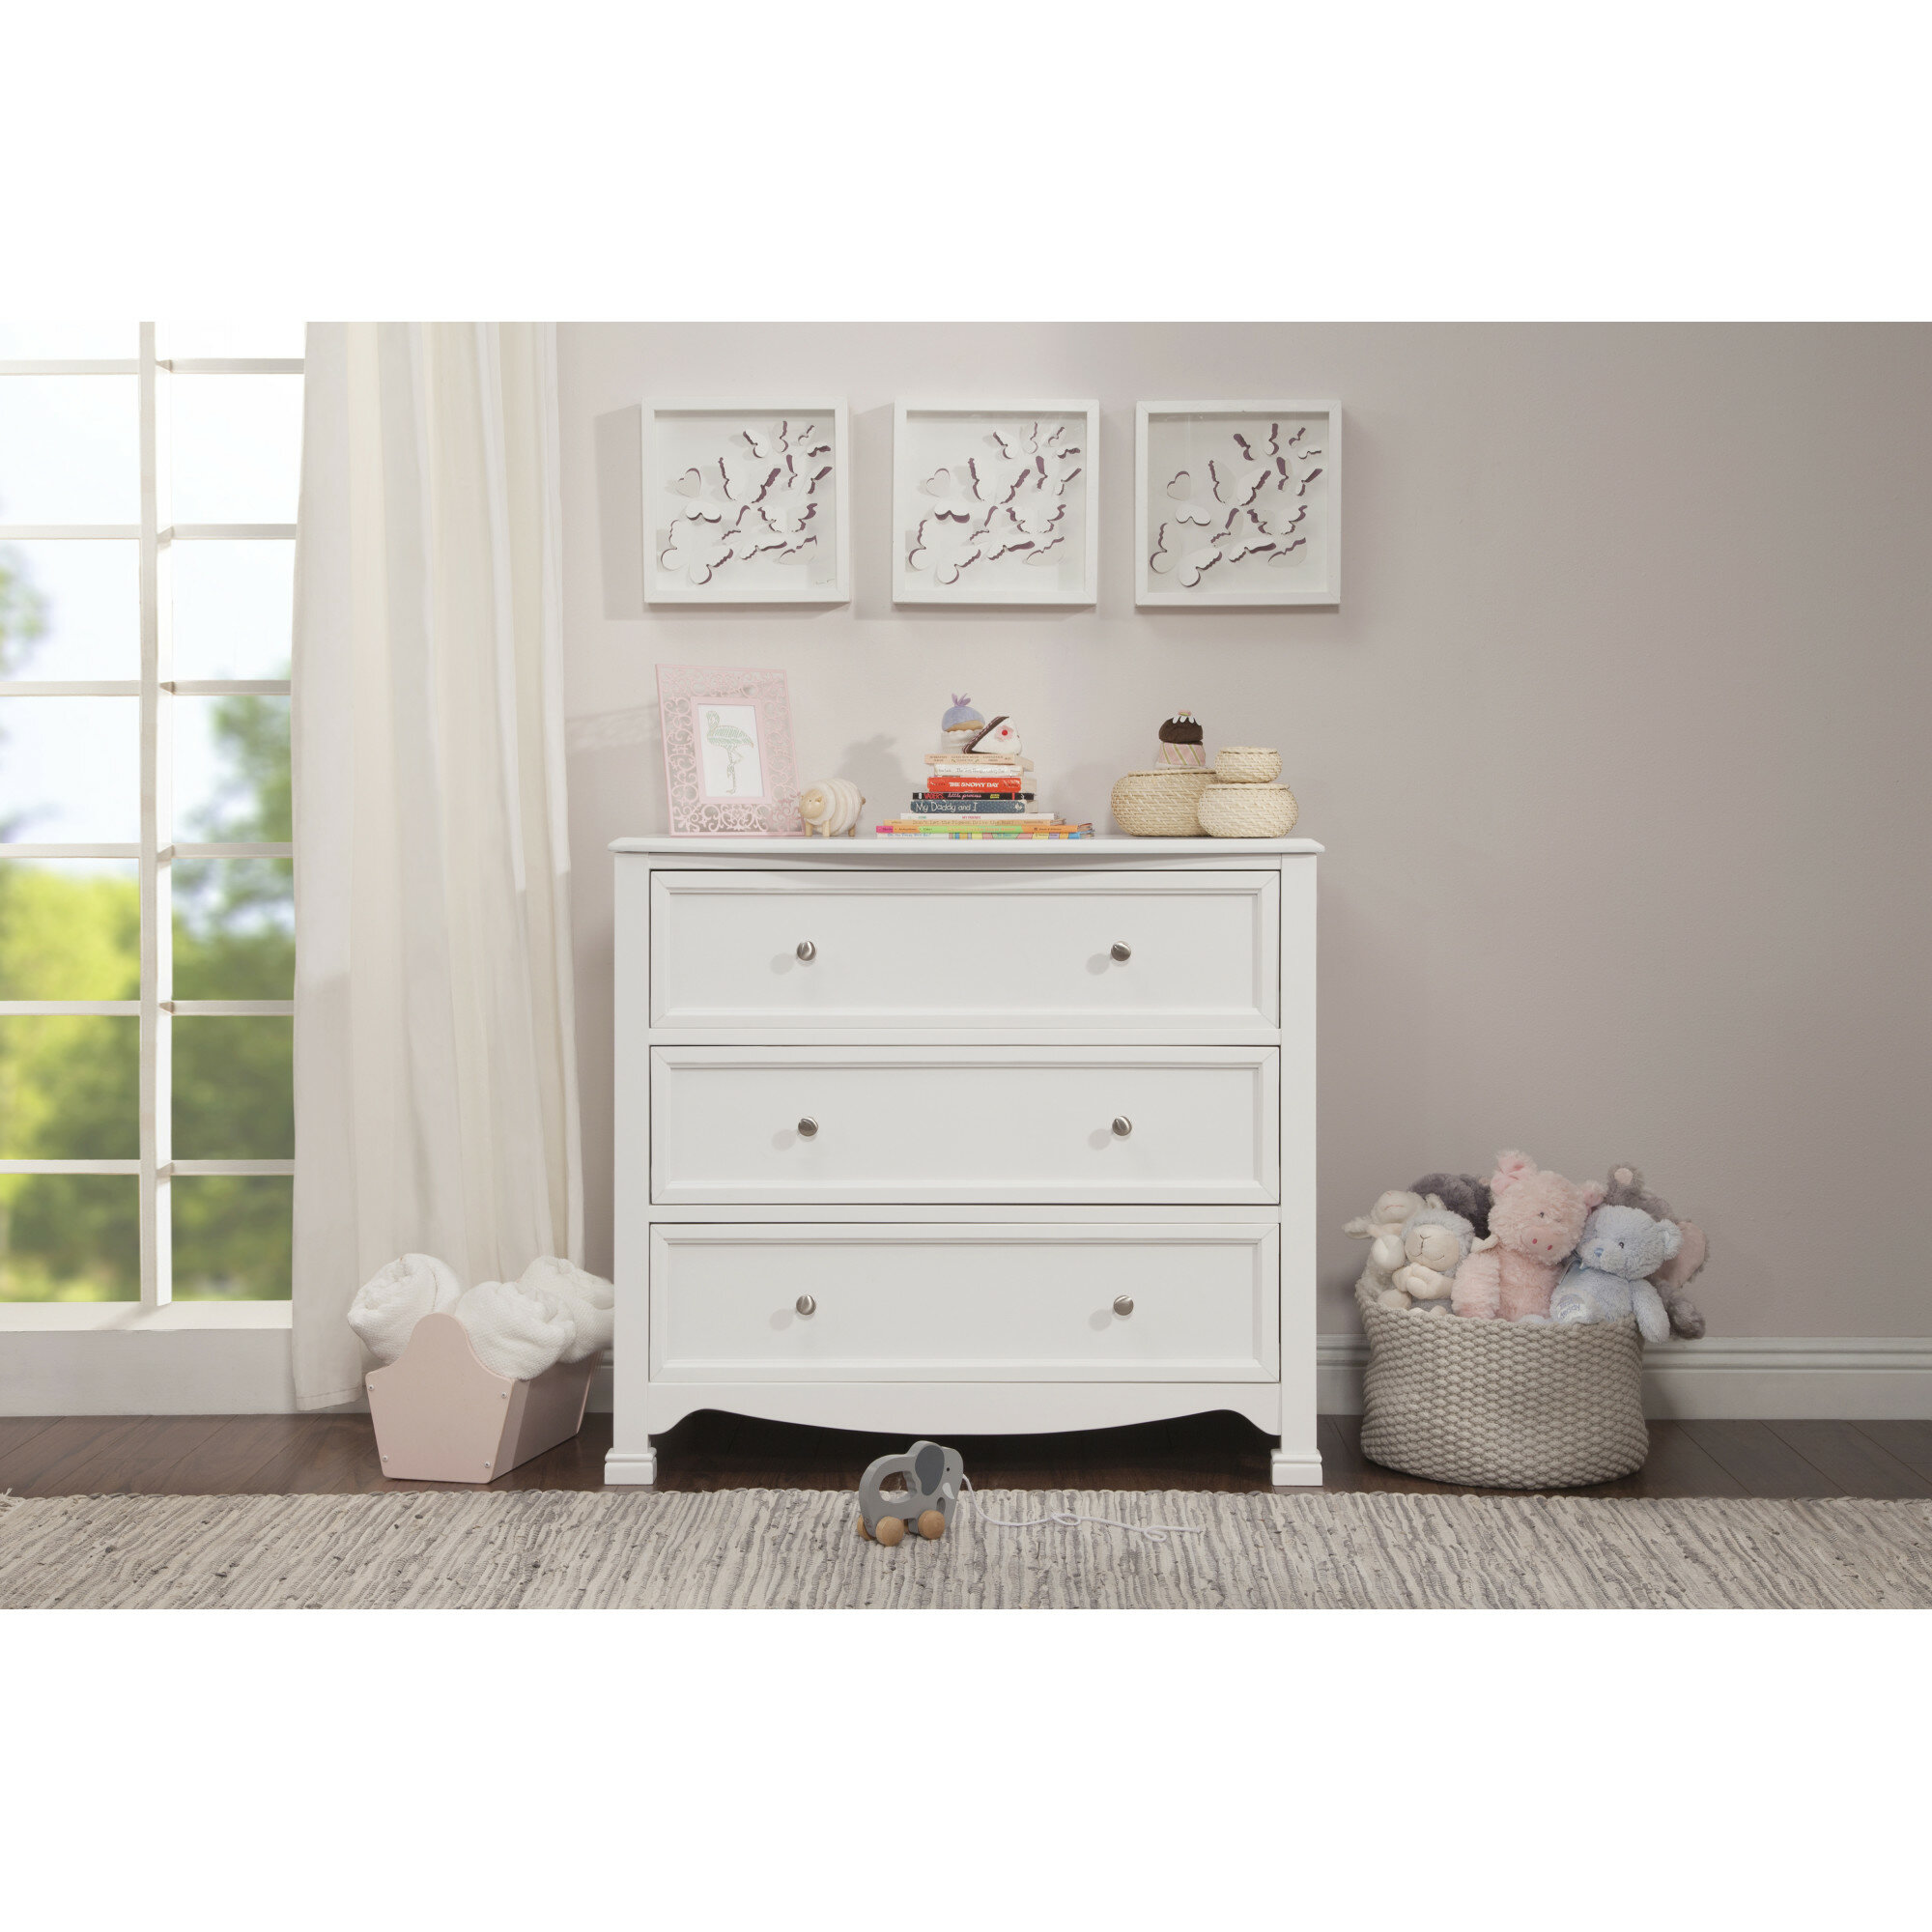 pdx dresser reviews wayfair reevo kids kalani south double drawer baby shore davinci